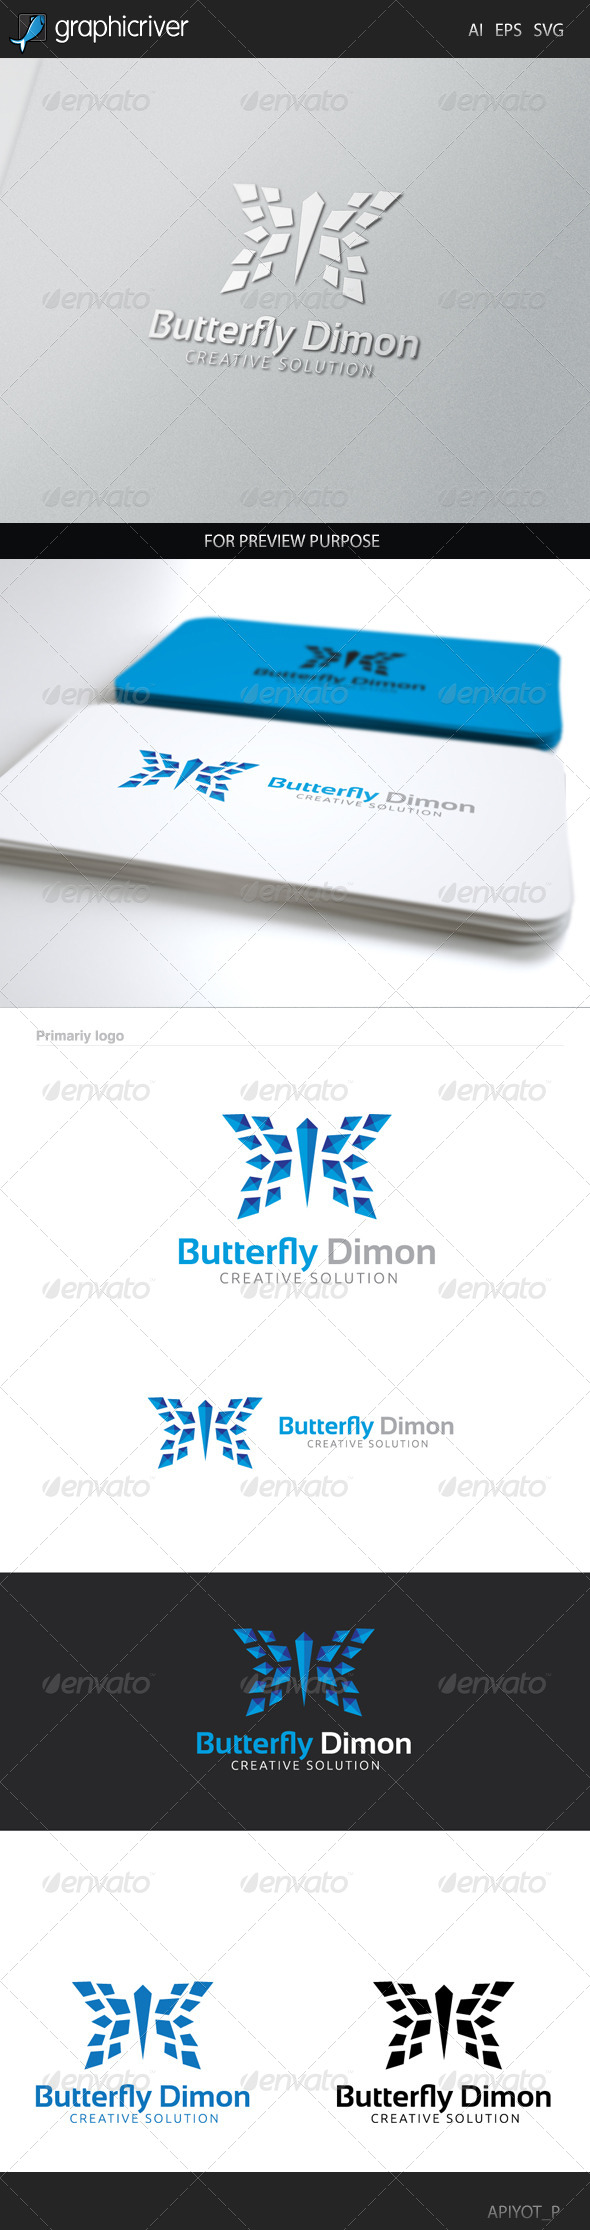 GraphicRiver Butterfly Dimon Logo 8433374